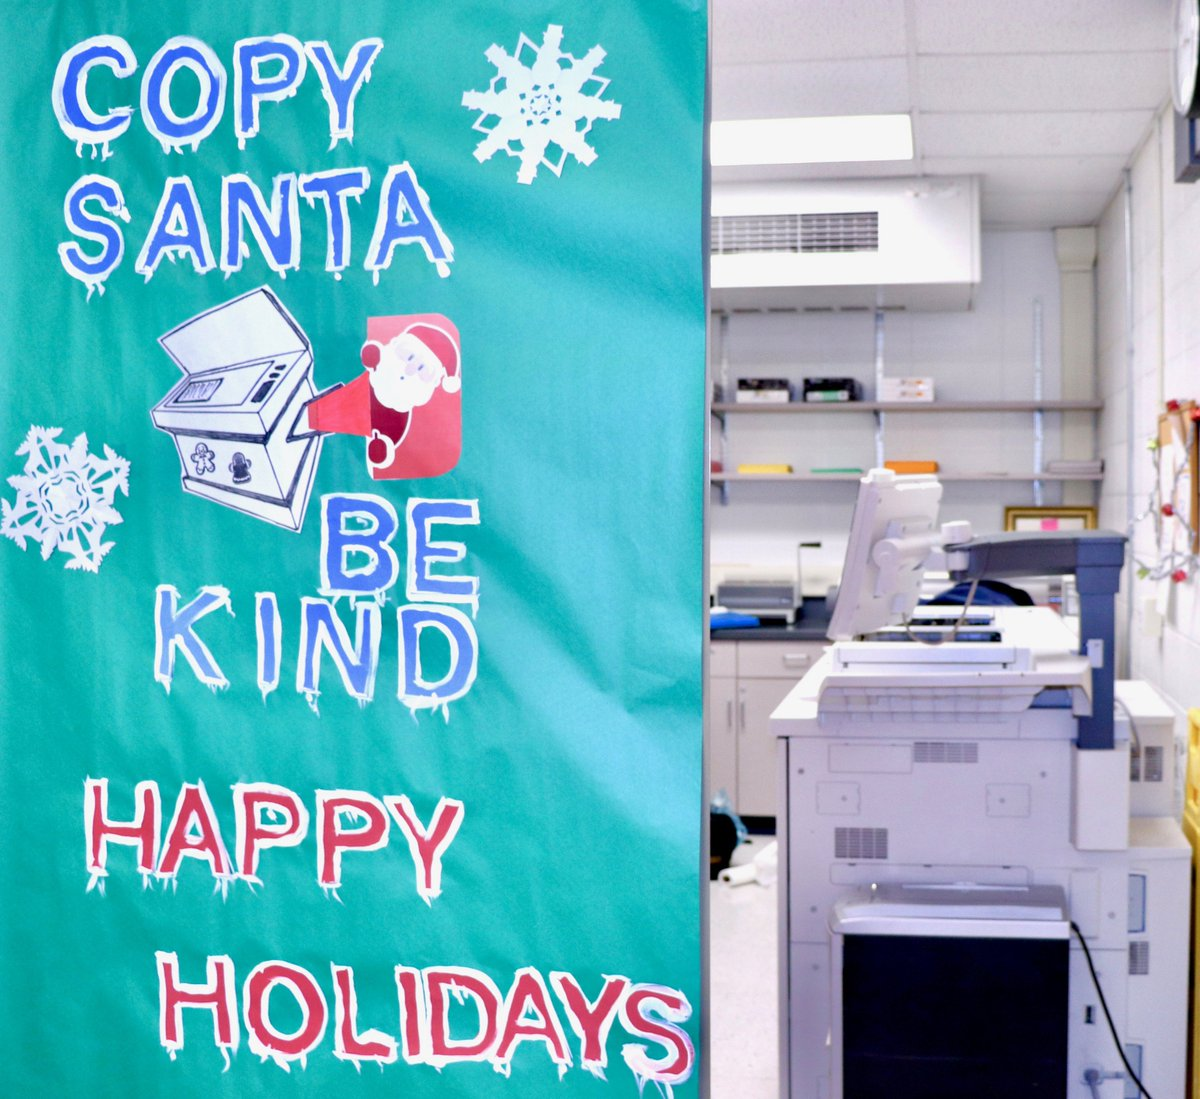 test Twitter Media - Wescott's copy room boasts a clever holiday poster! #d30learns https://t.co/7arOFMGQD5